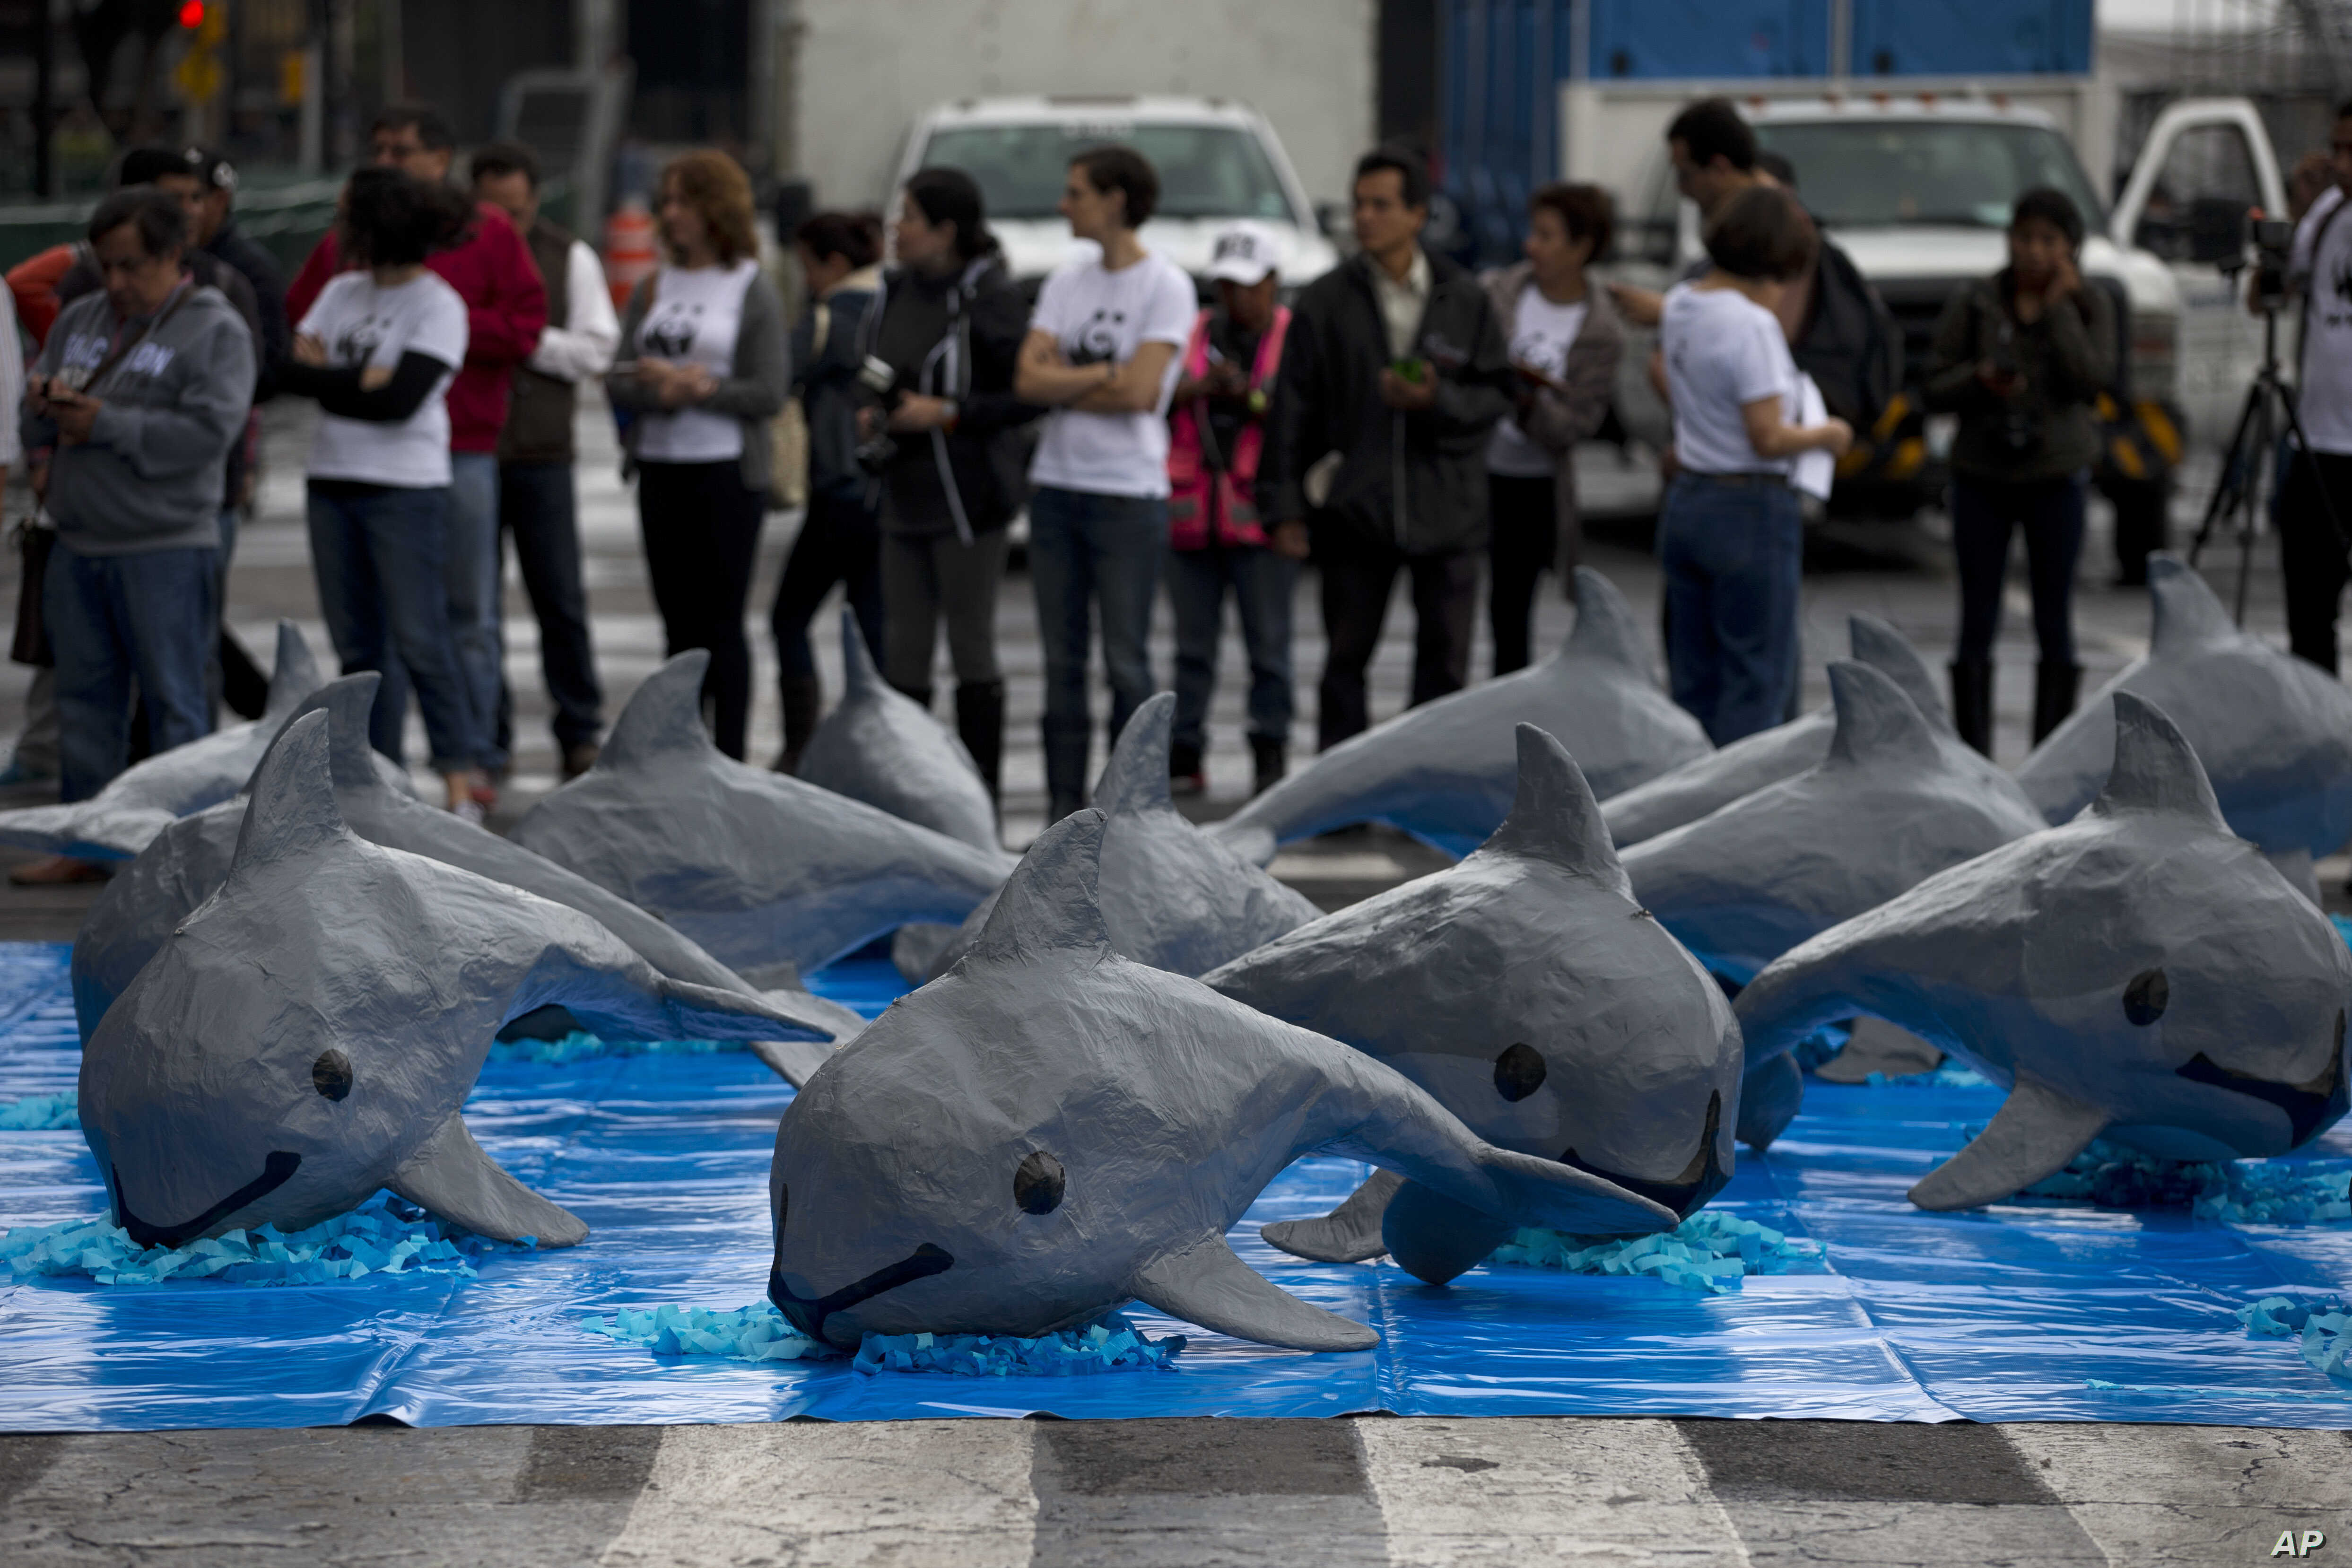 FILE - Papier mache replicas of the critically endangered porpoise known as the vaquita marina are displayed during an event in front of the National Palace calling on the Mexican government to take additional steps to protect the world's smallest ma...